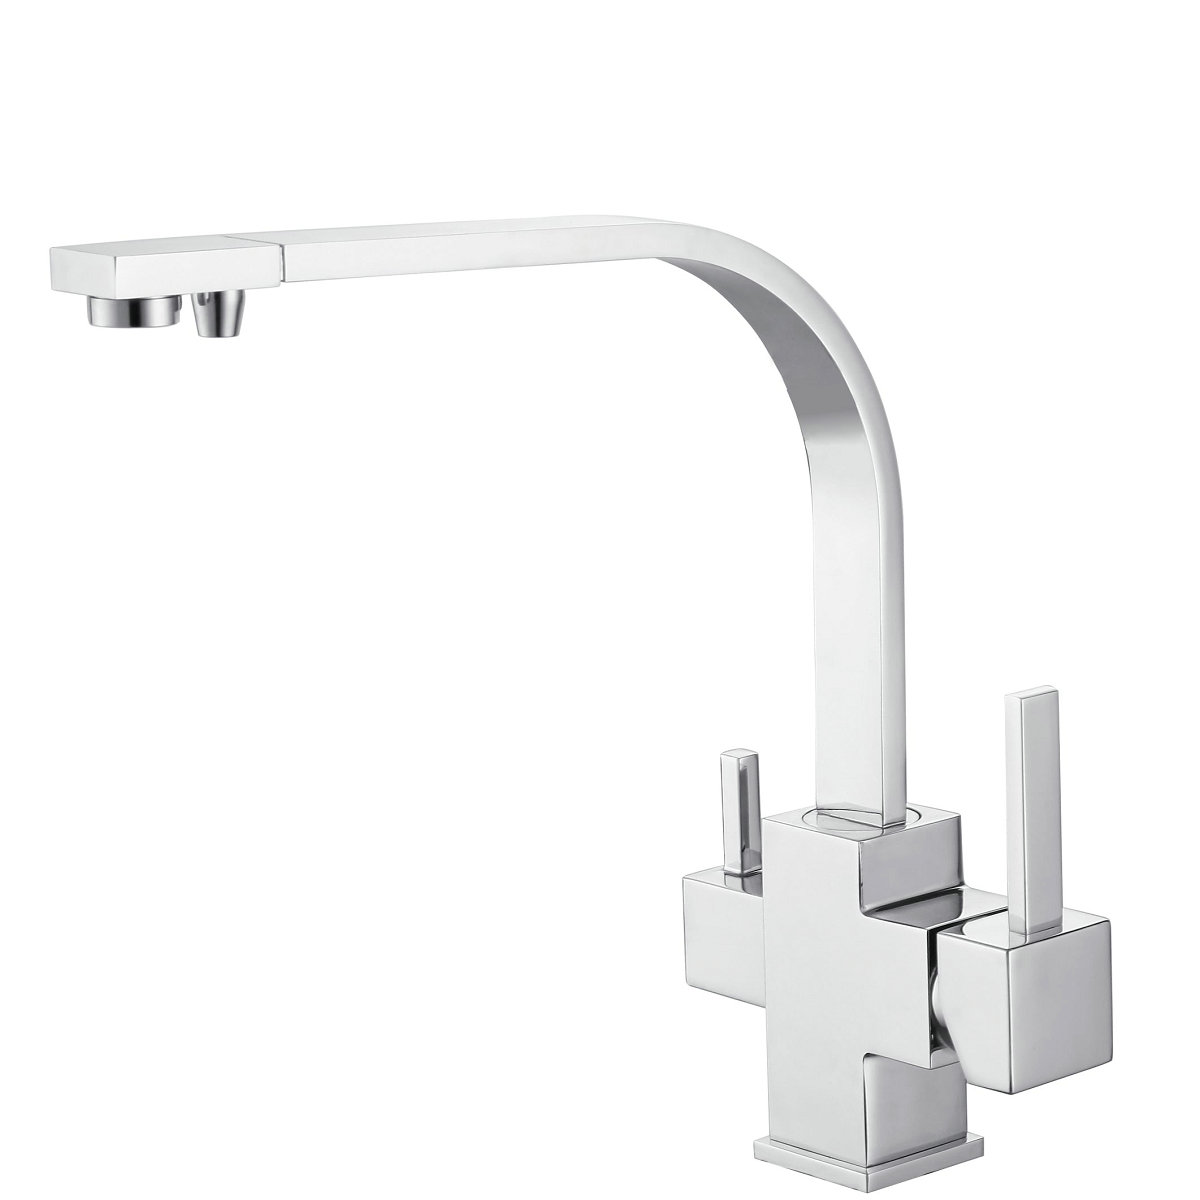 Original Factory tri flow  kitchen faucet for RO System